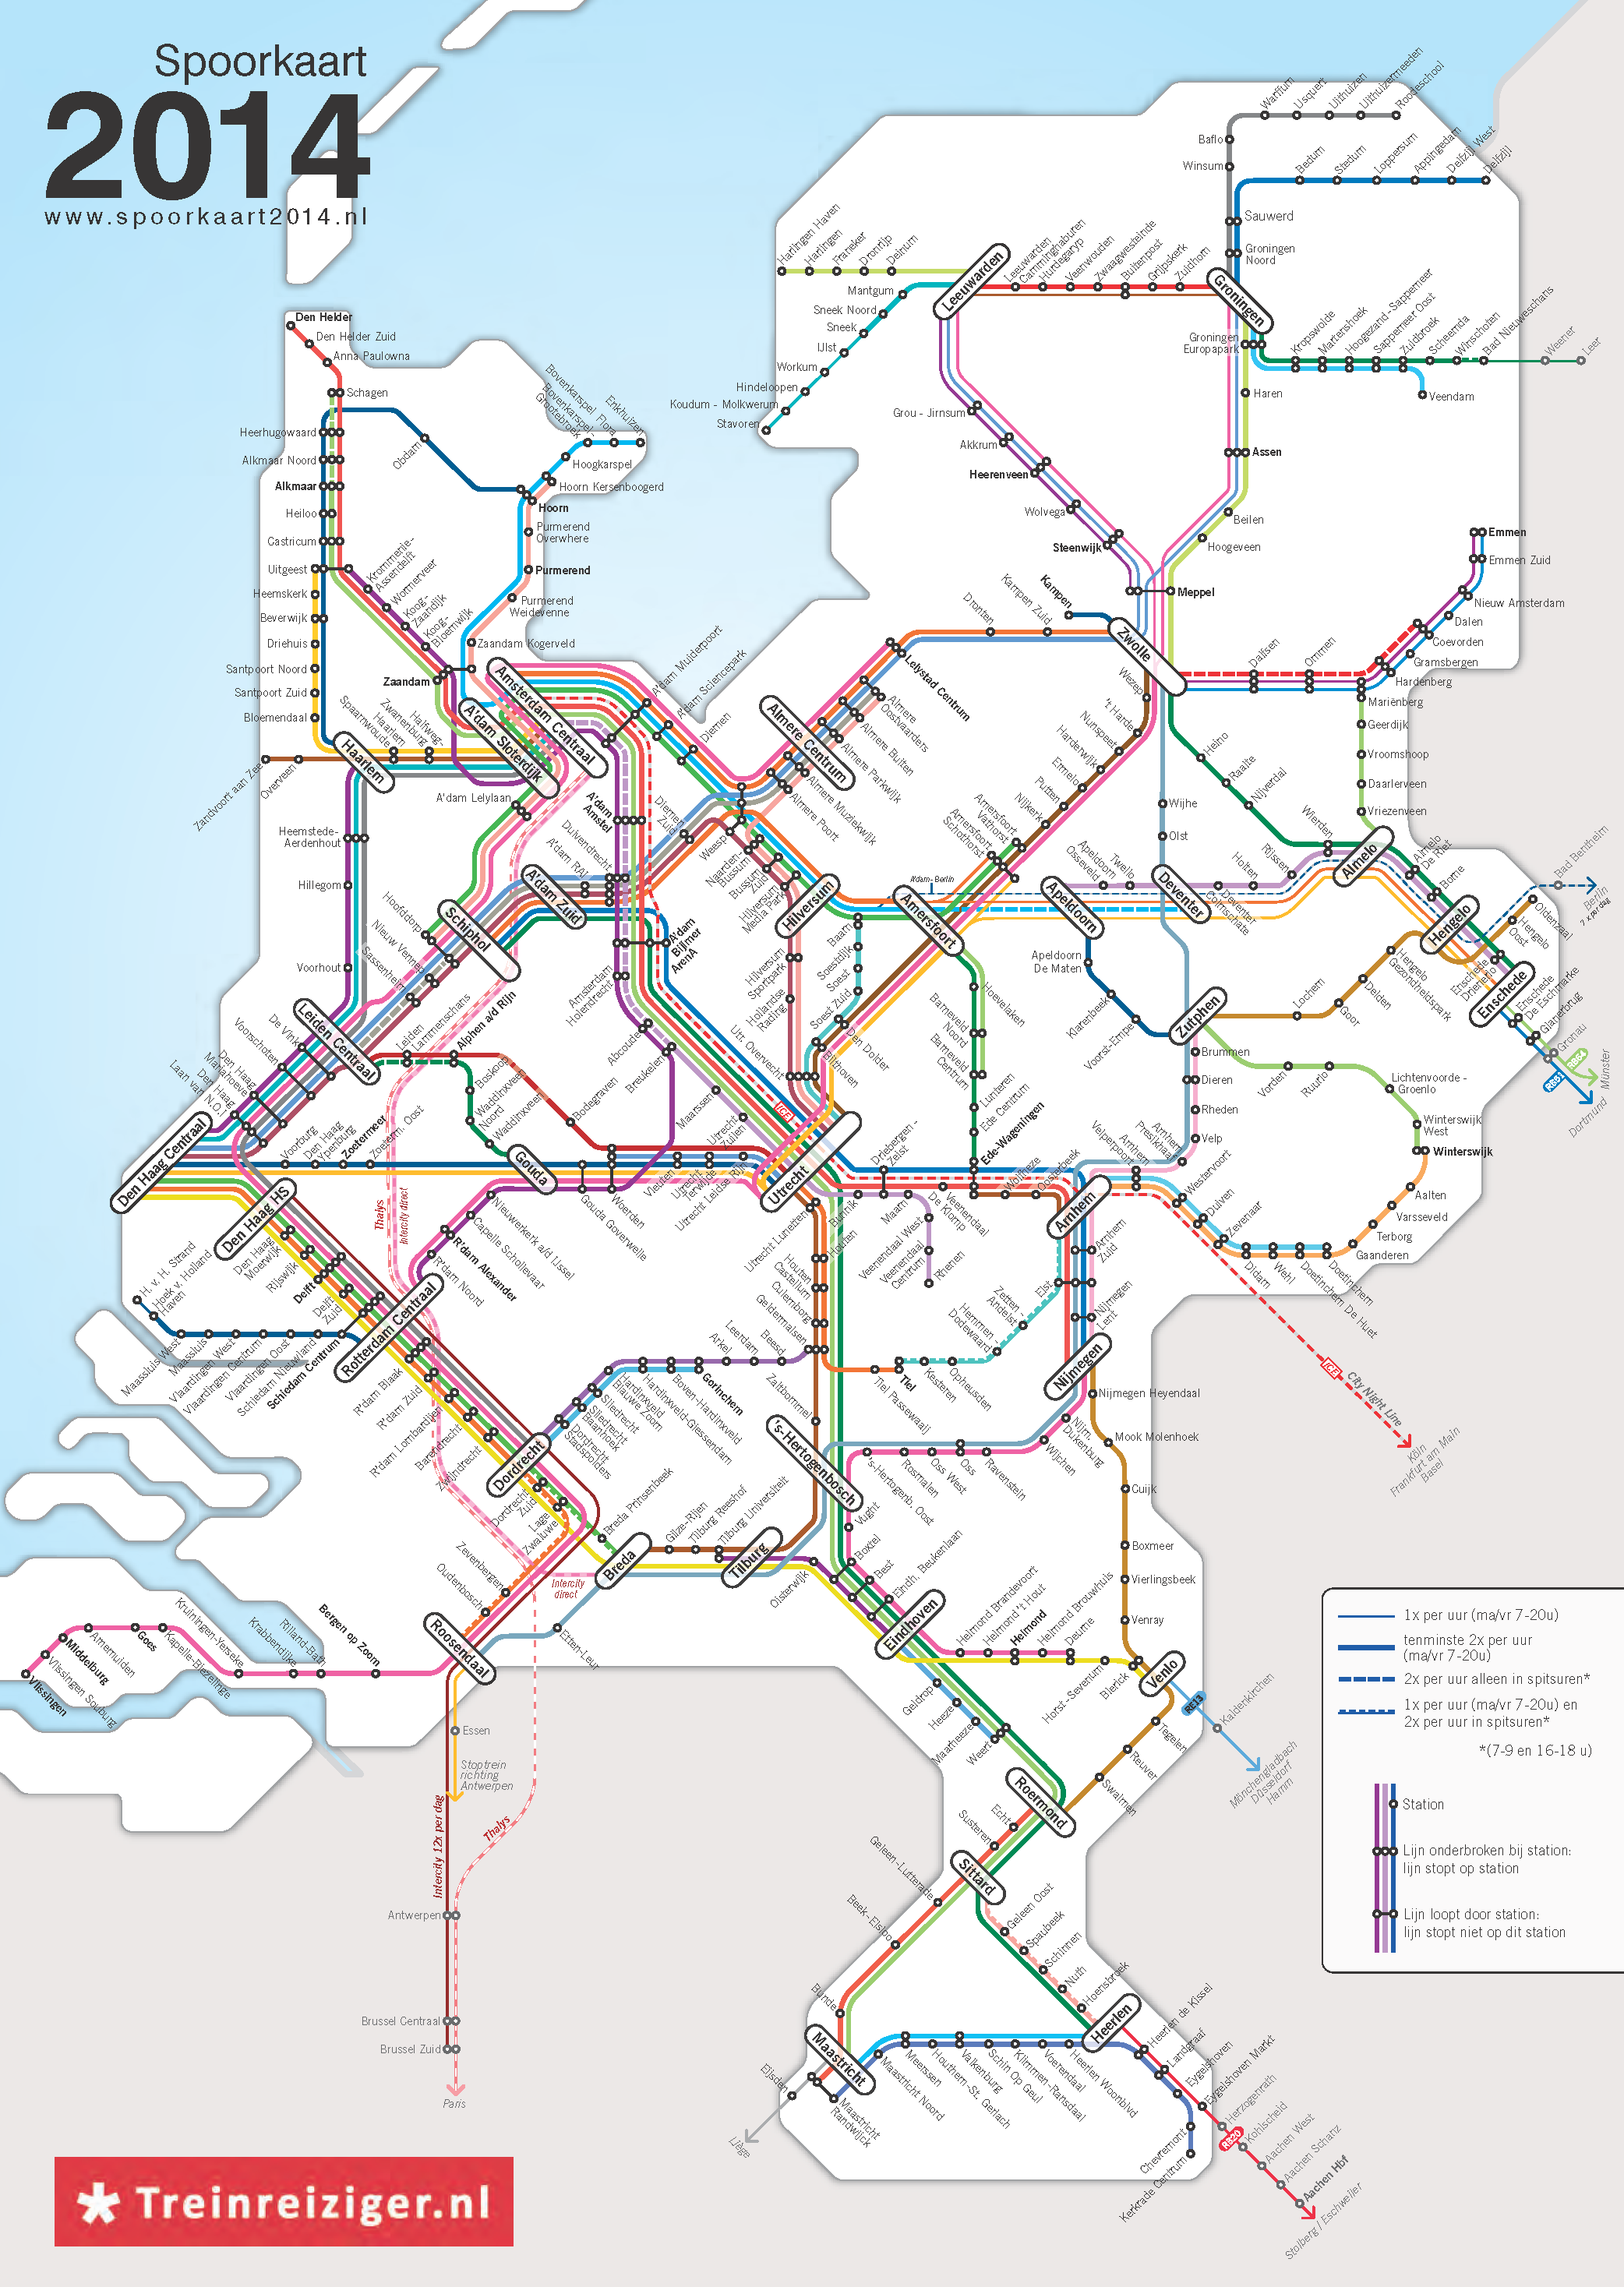 Train lines and their service frequencies in the Netherlands